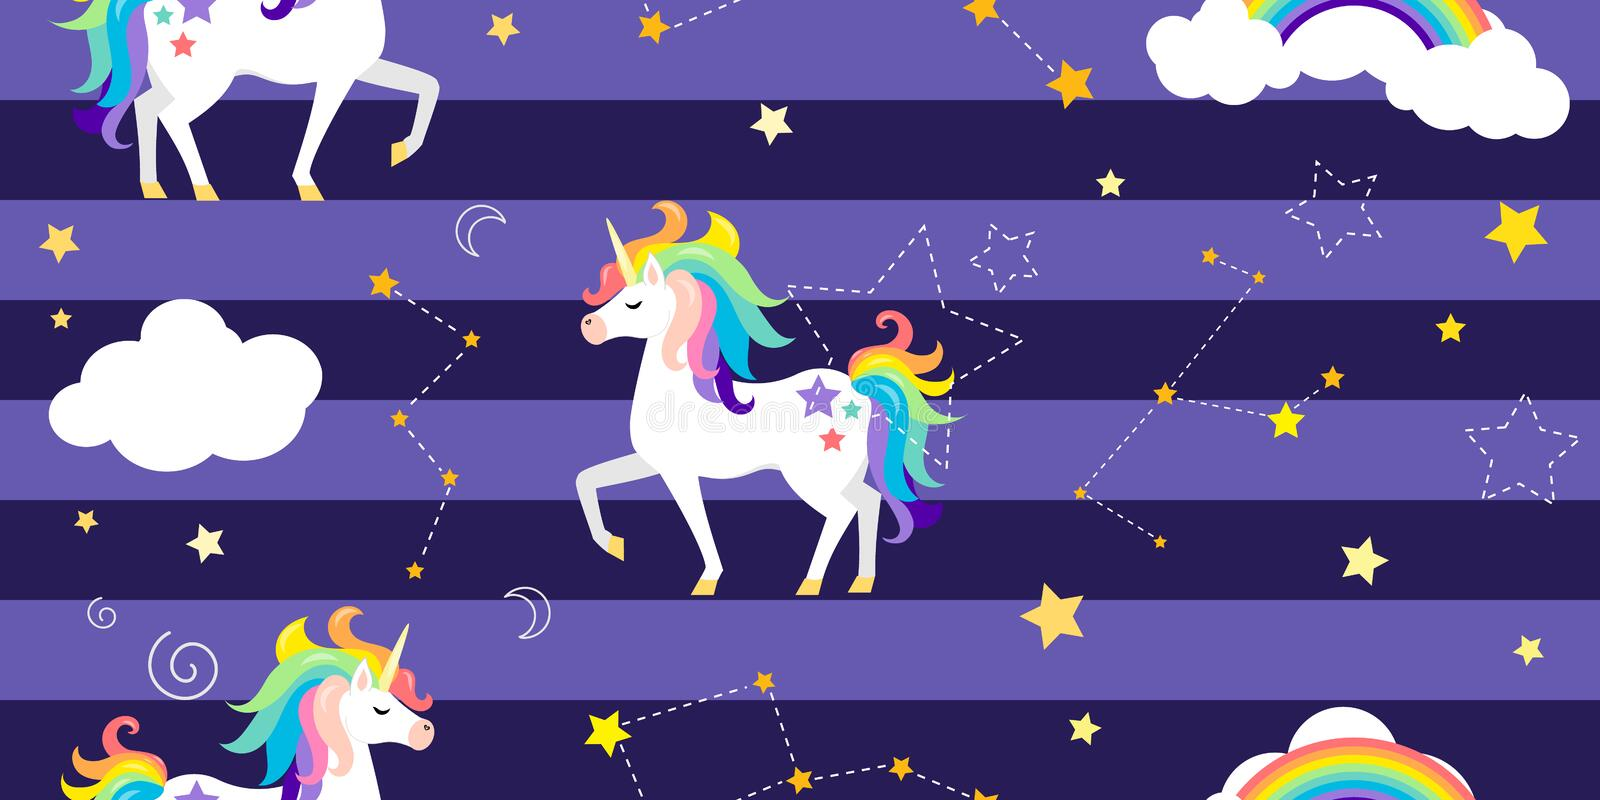 Vector background with unicorns, rainbow, constellations and other elements. royalty free illustration